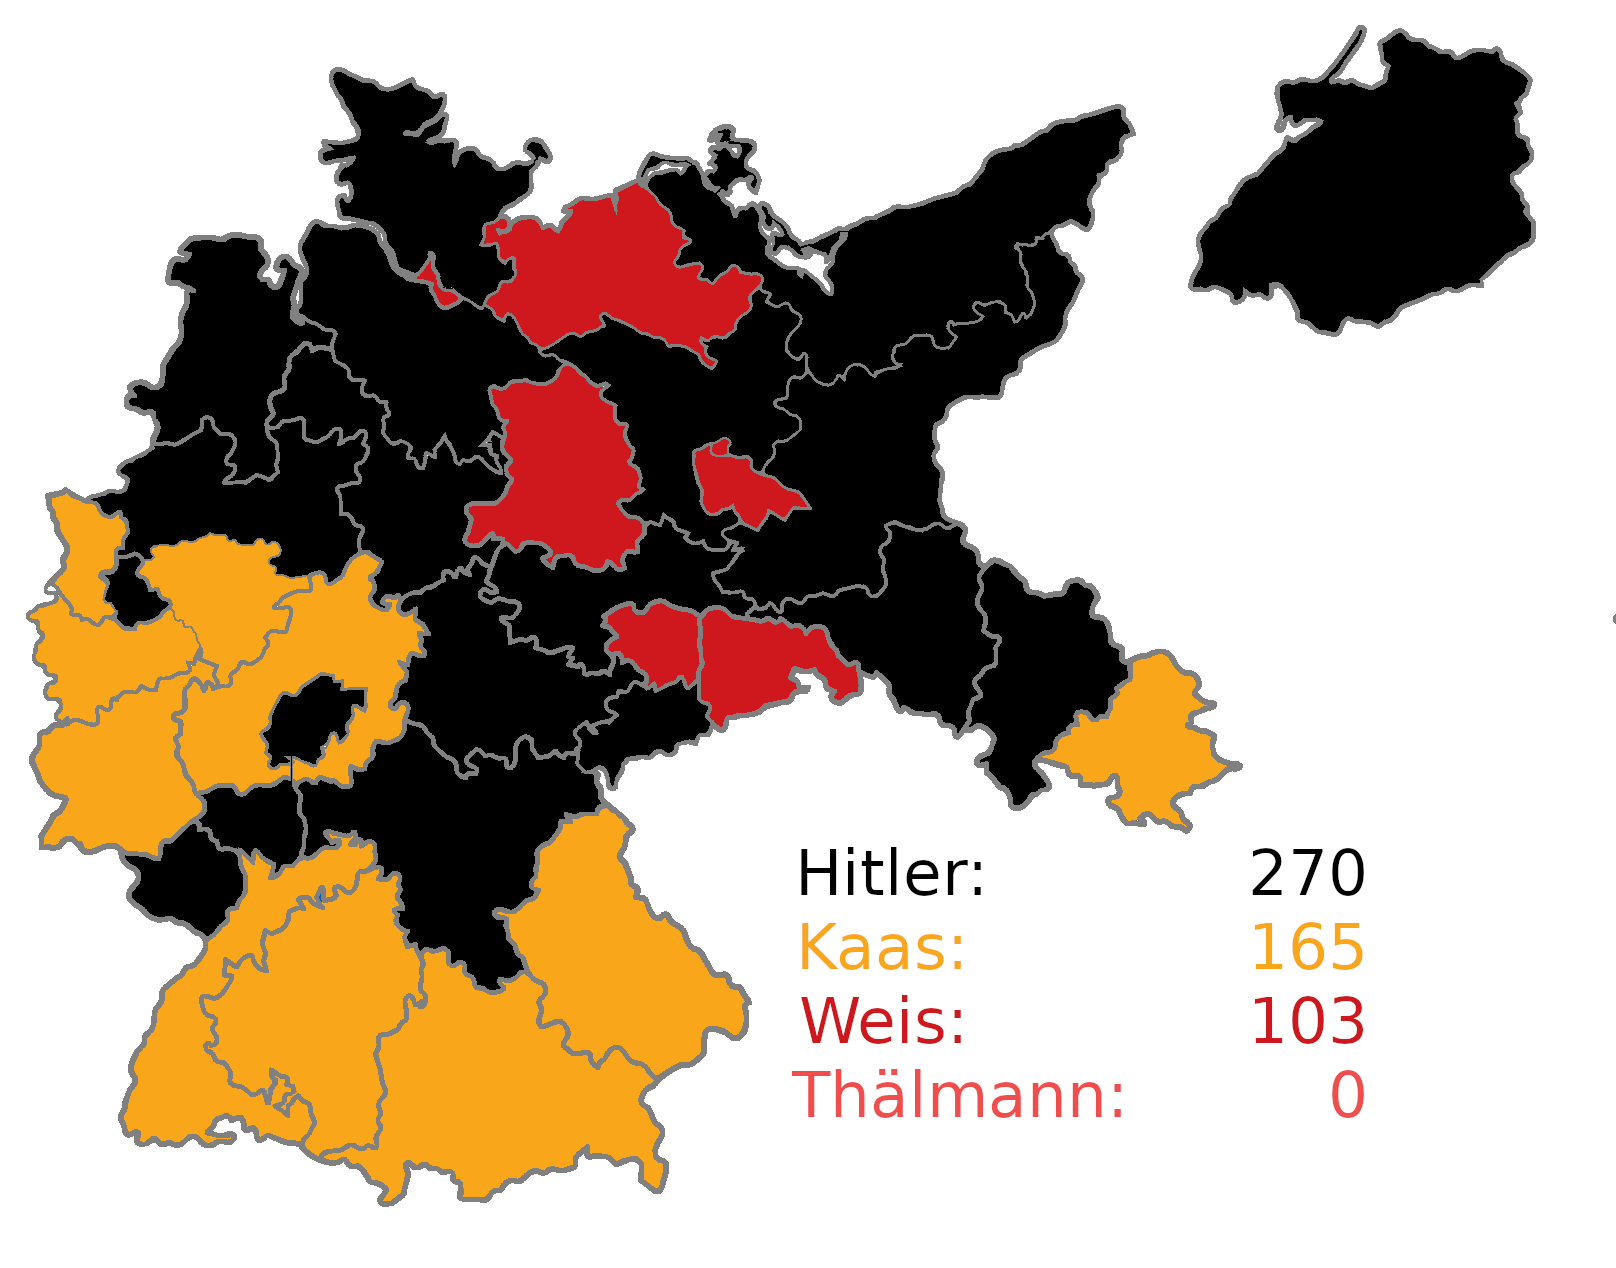 Alternate history scenarios: A Weimar Republic Electoral College